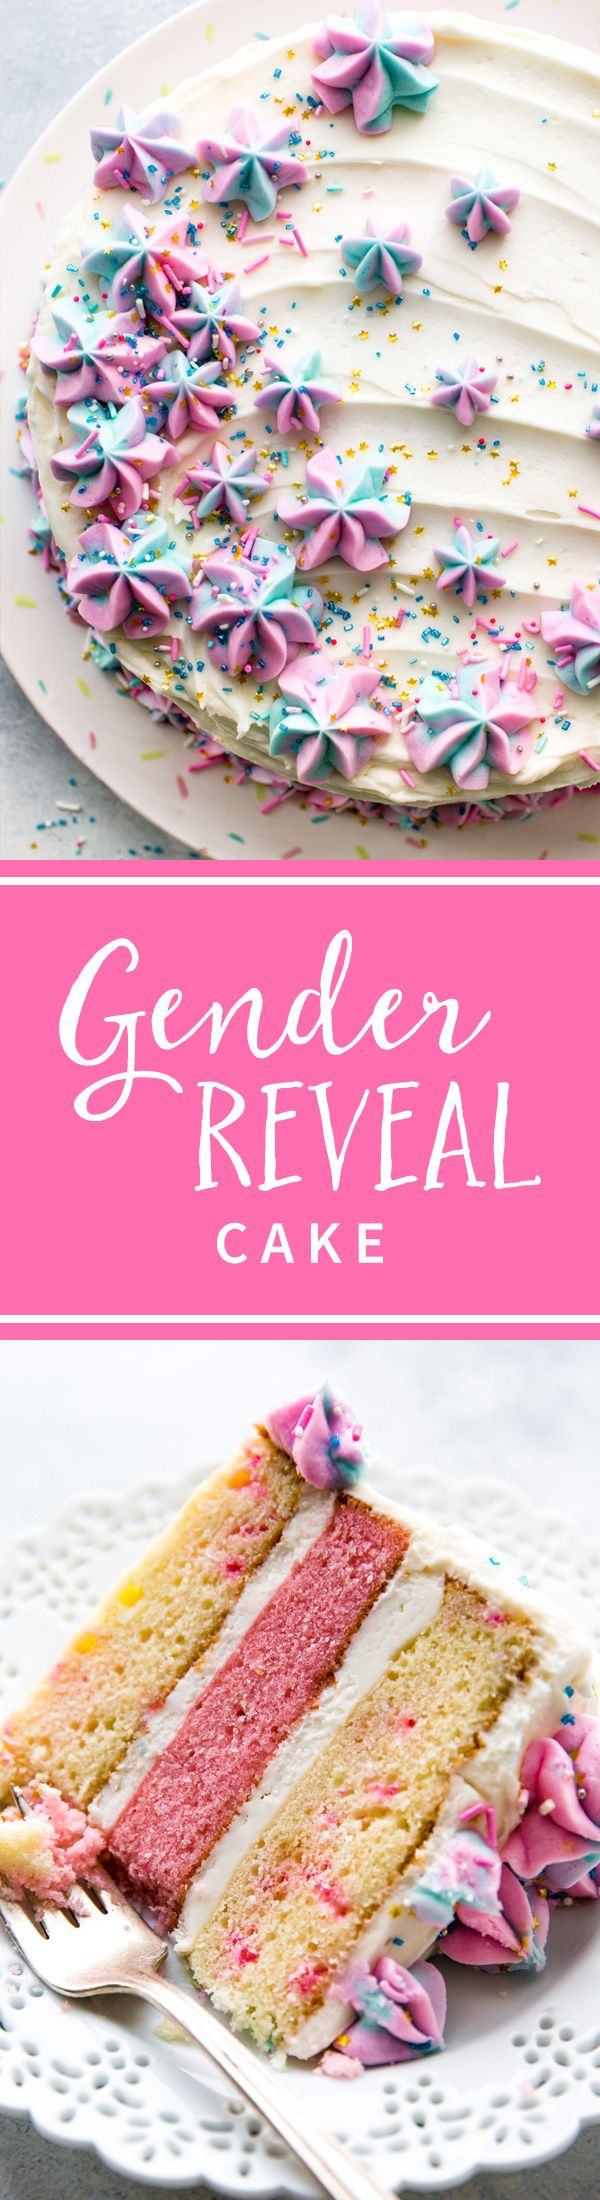 How to make a gorgeous and festive gender reveal cake for a gender reveal party or baby shower! Homemade cake recipe on sallysbakingaddiction.com